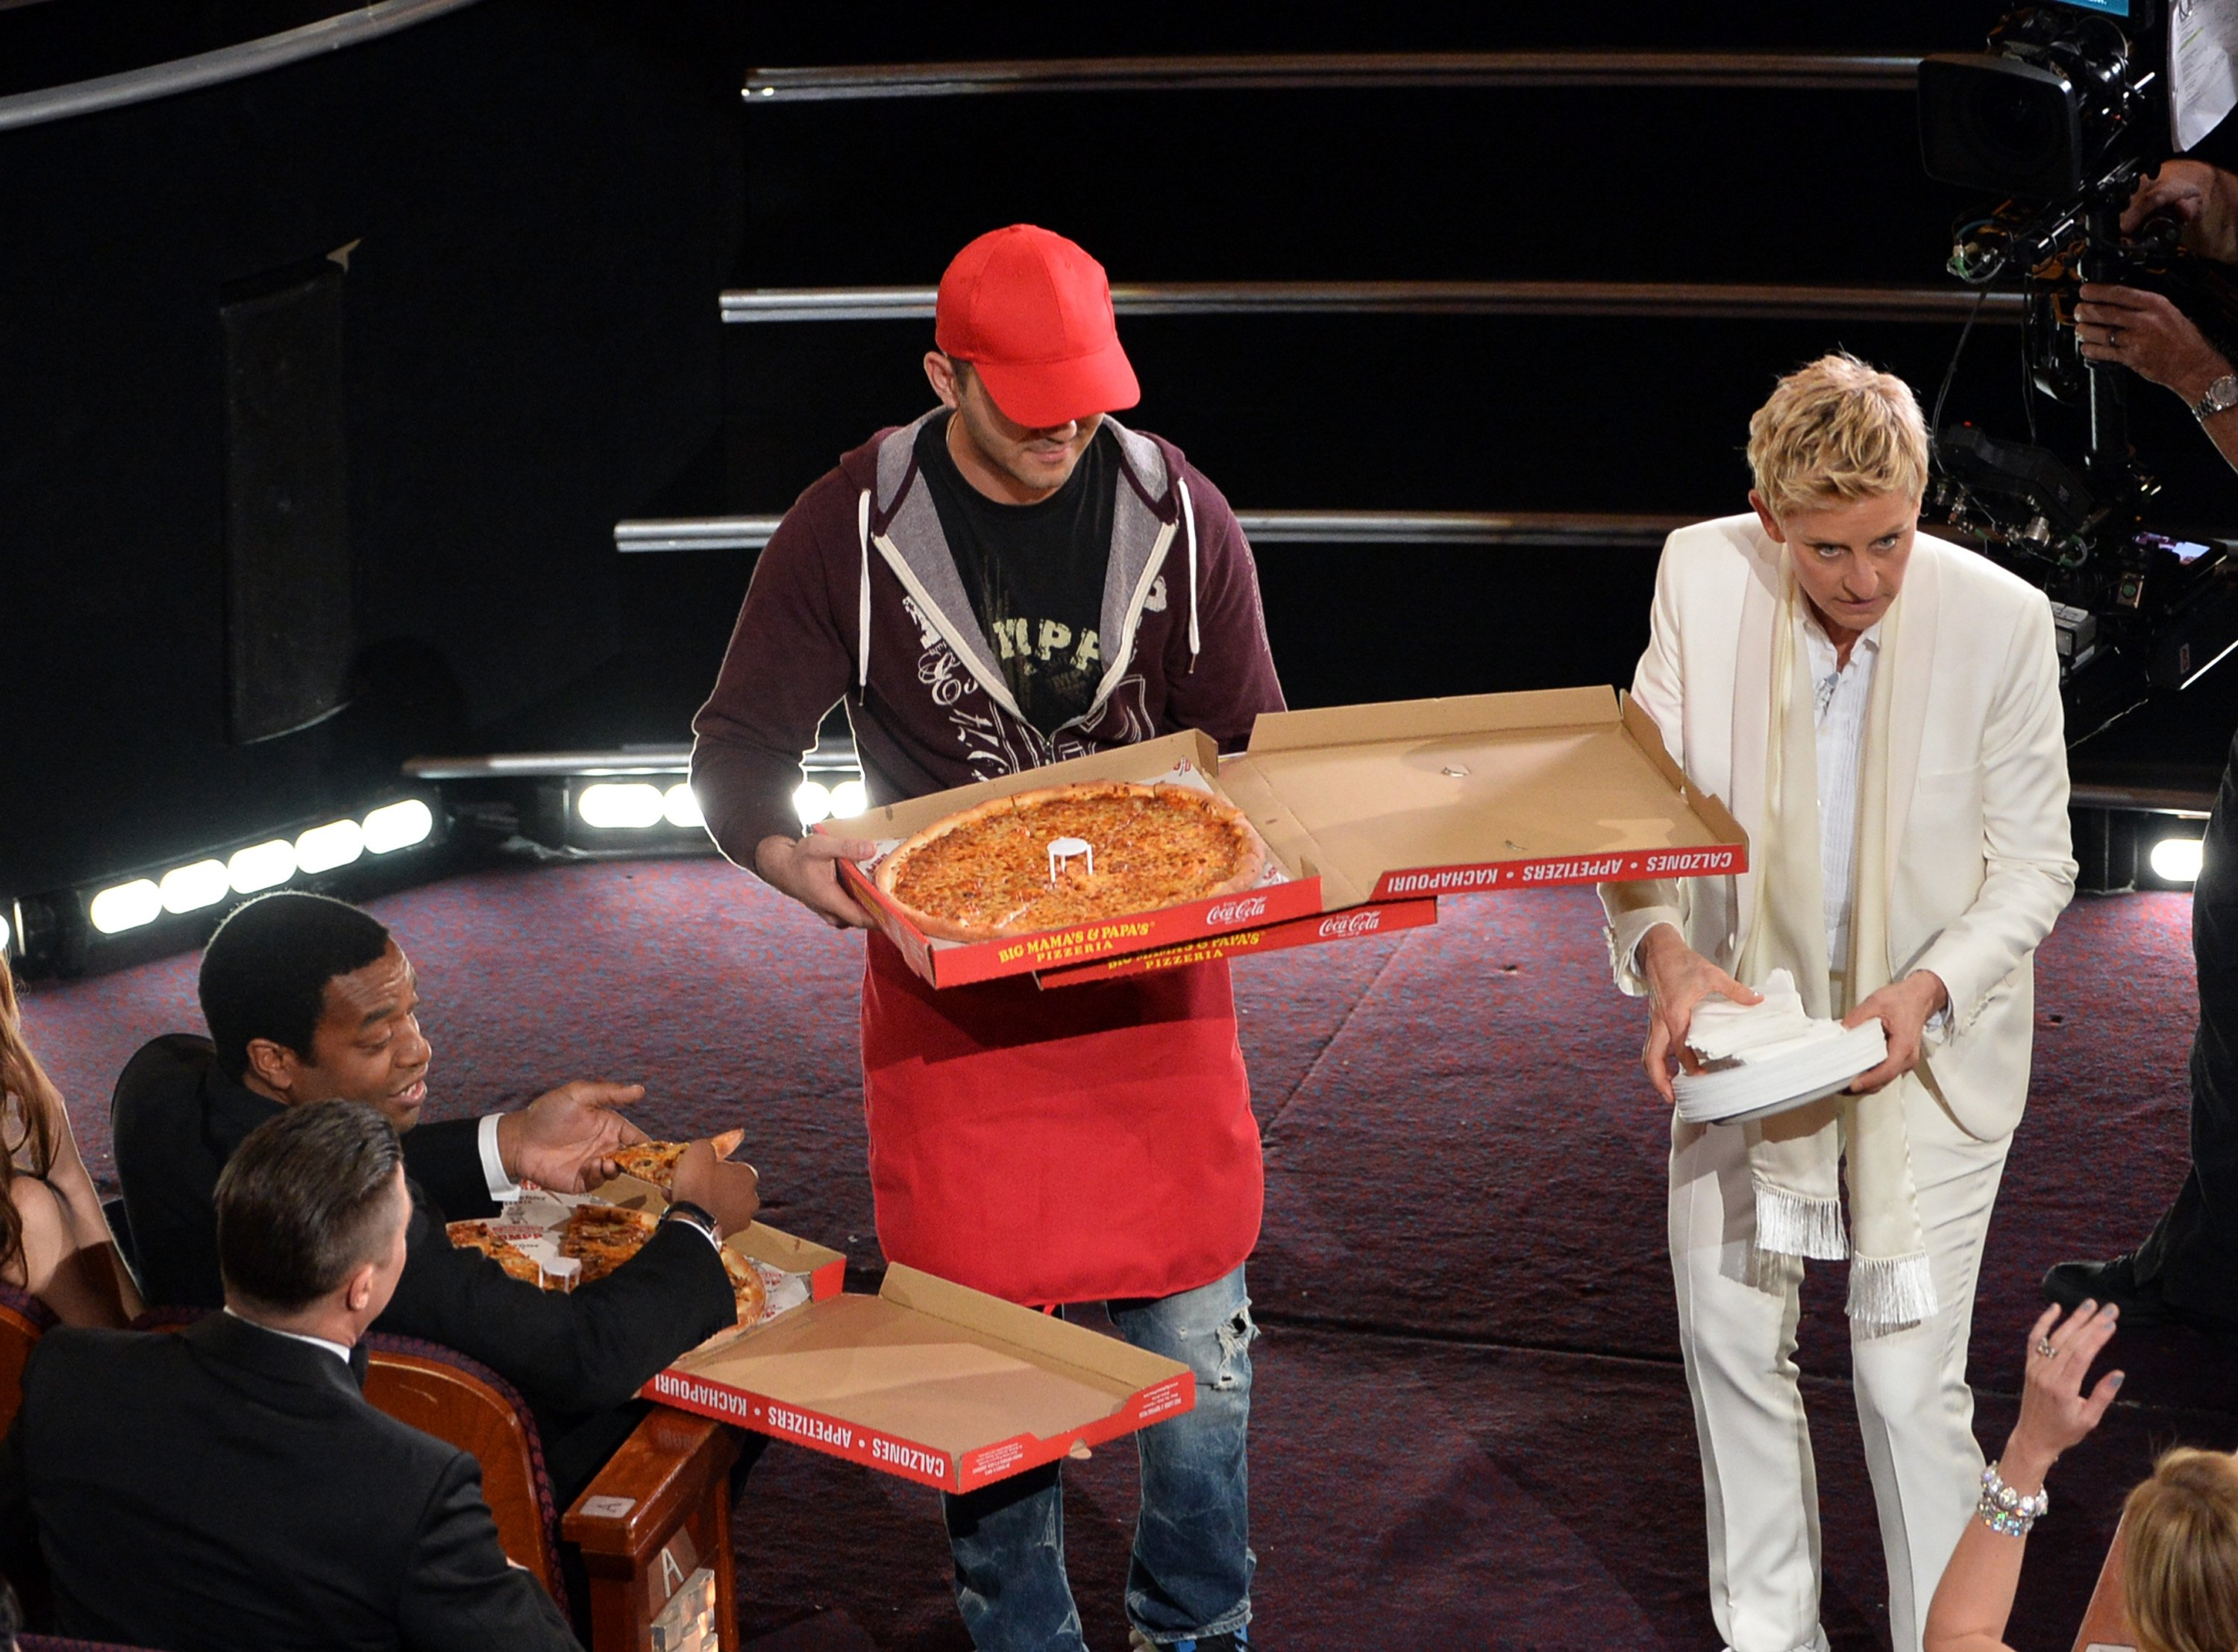 Host Ellen DeGeneres (right) and actor Chiwetel Ejiofor (far left) with pizza delivery man in the audience during the Oscars at the Dolby Theatre on March 2, 2014 in Hollywood.